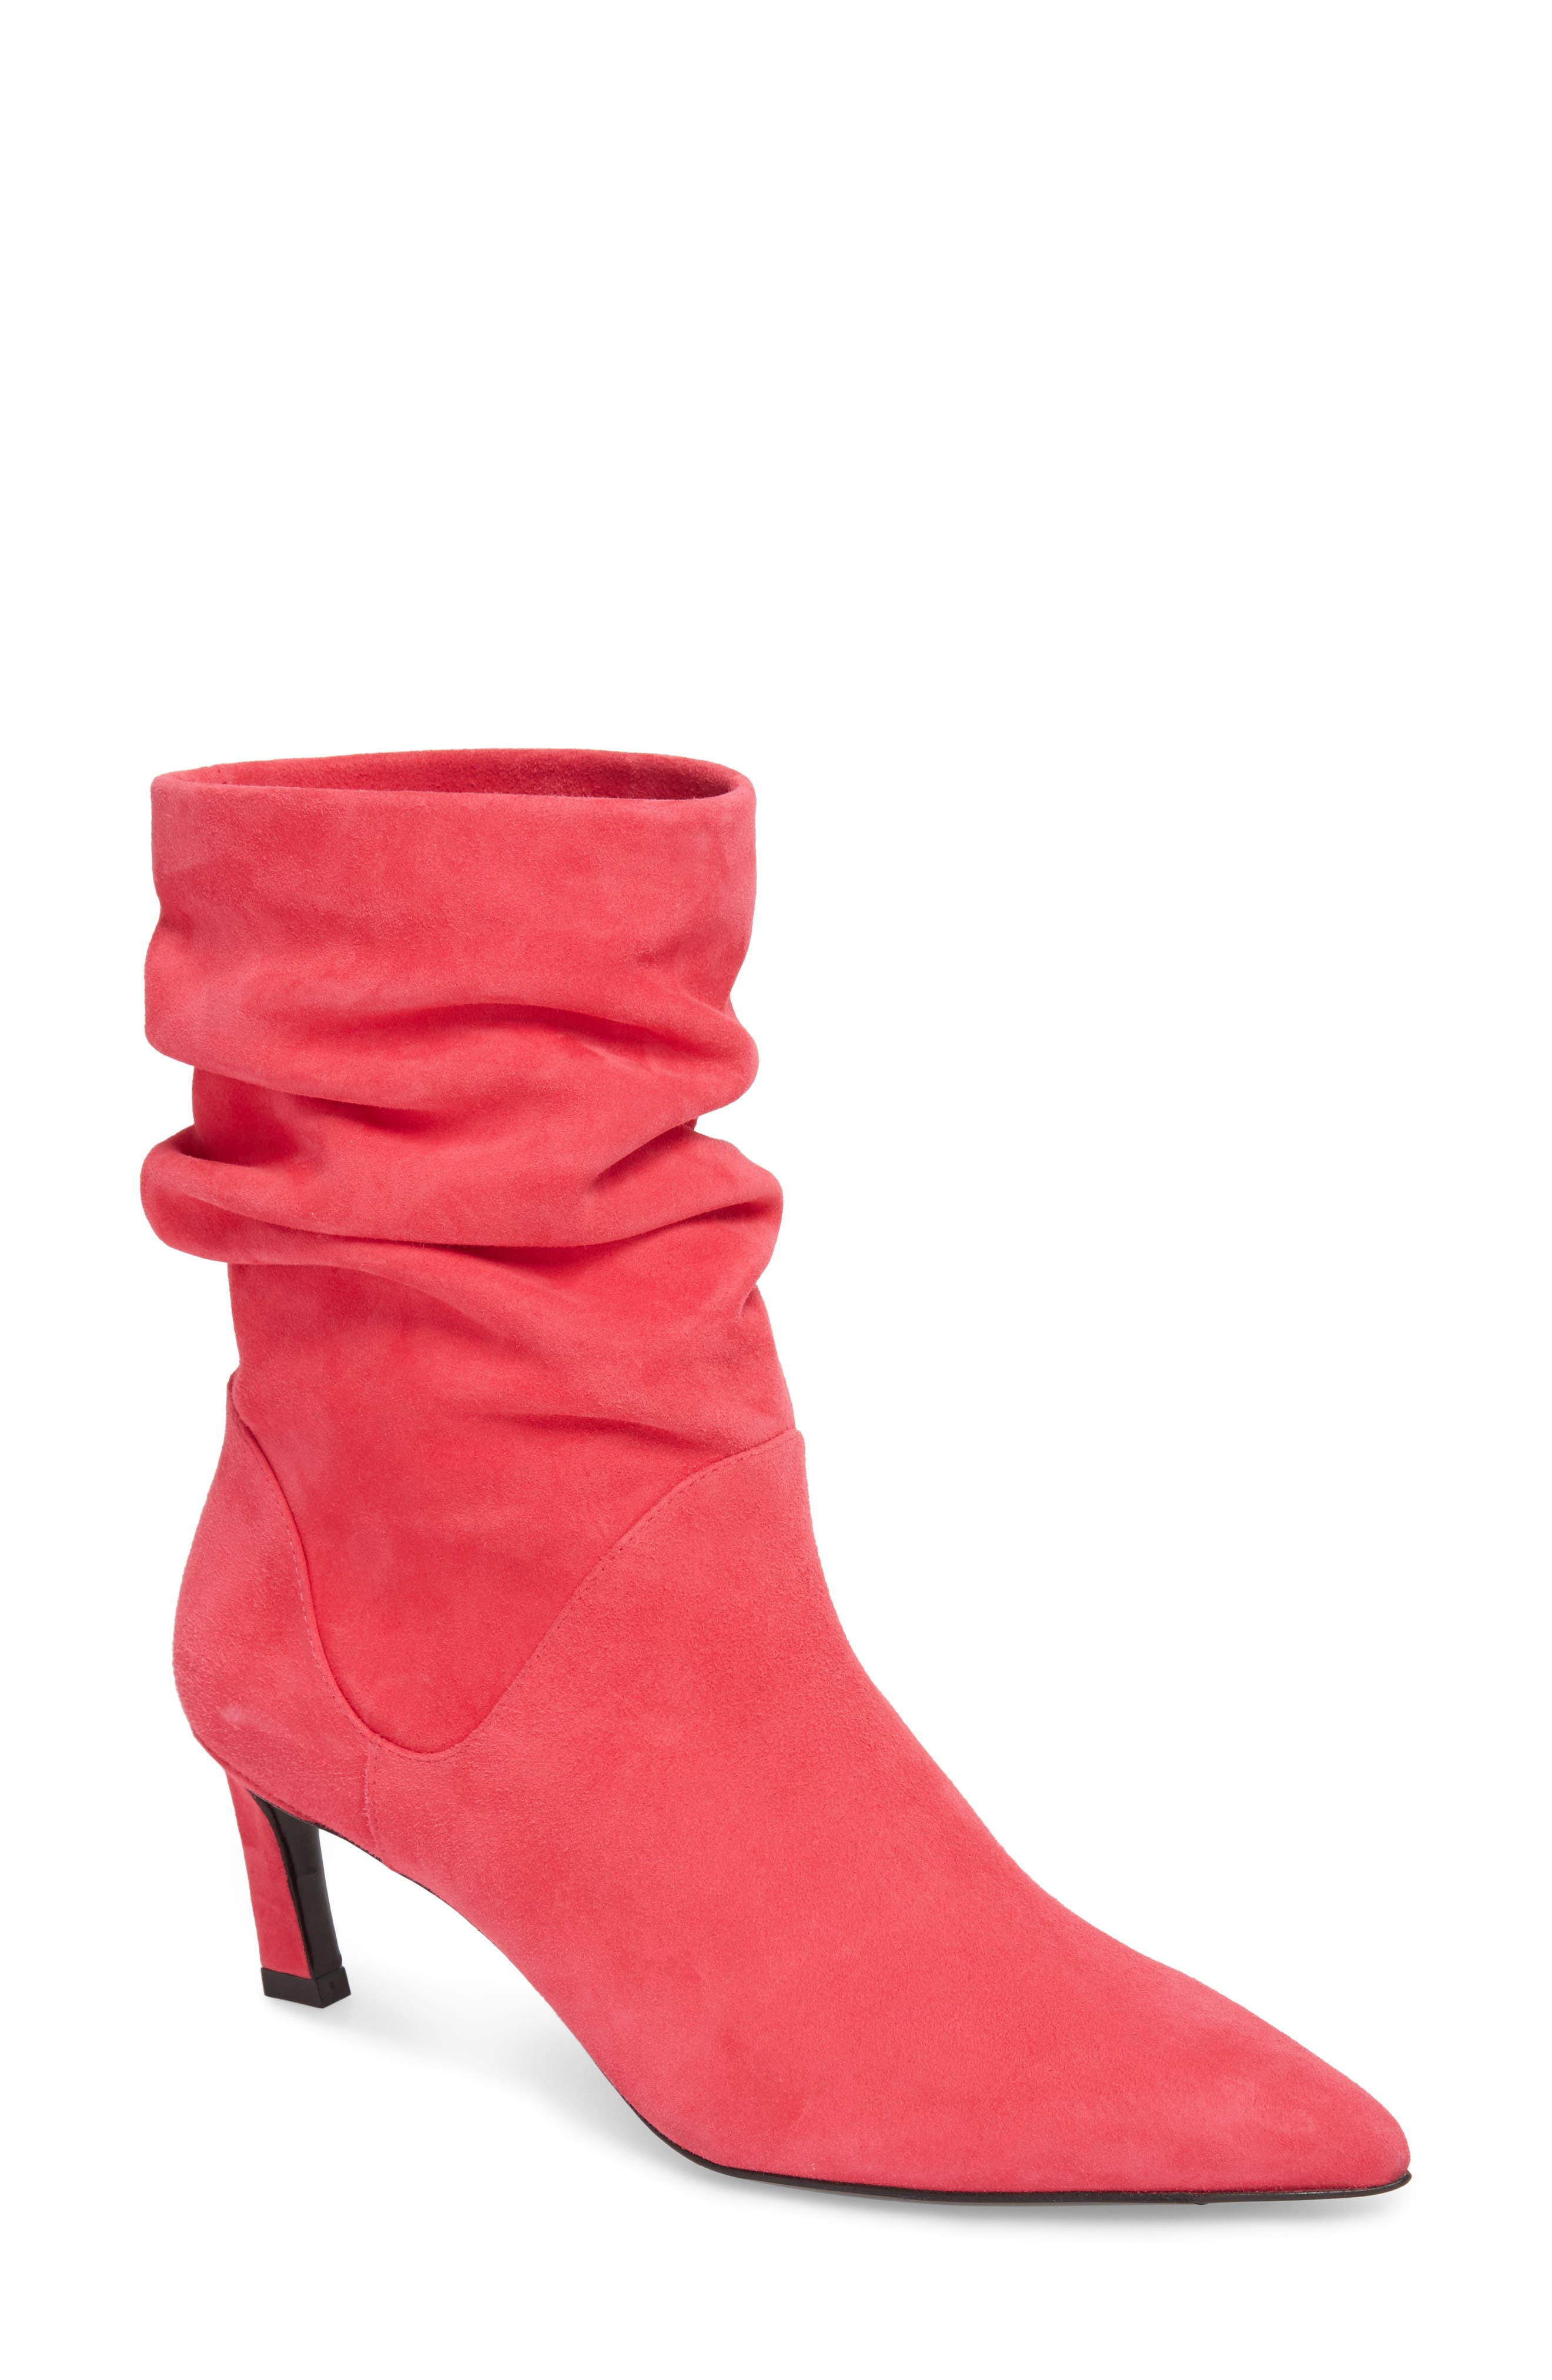 Demibenatar Slouch Bootie,                         Main,                         color, Coral Luxe Suede